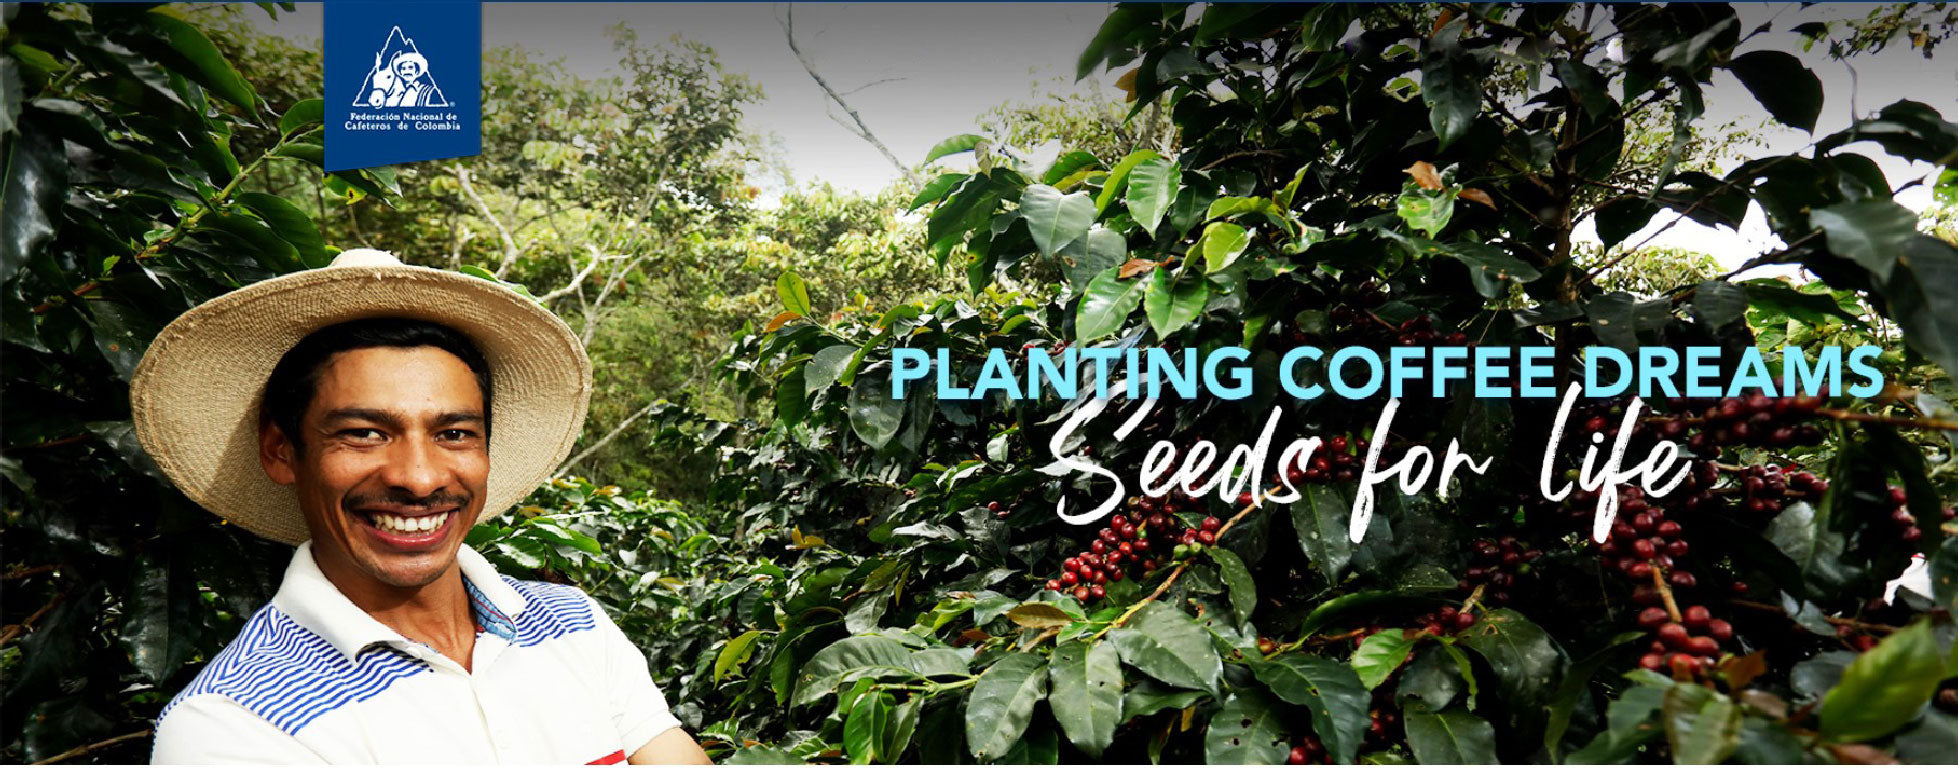 roestkaffee planting coffee dreams